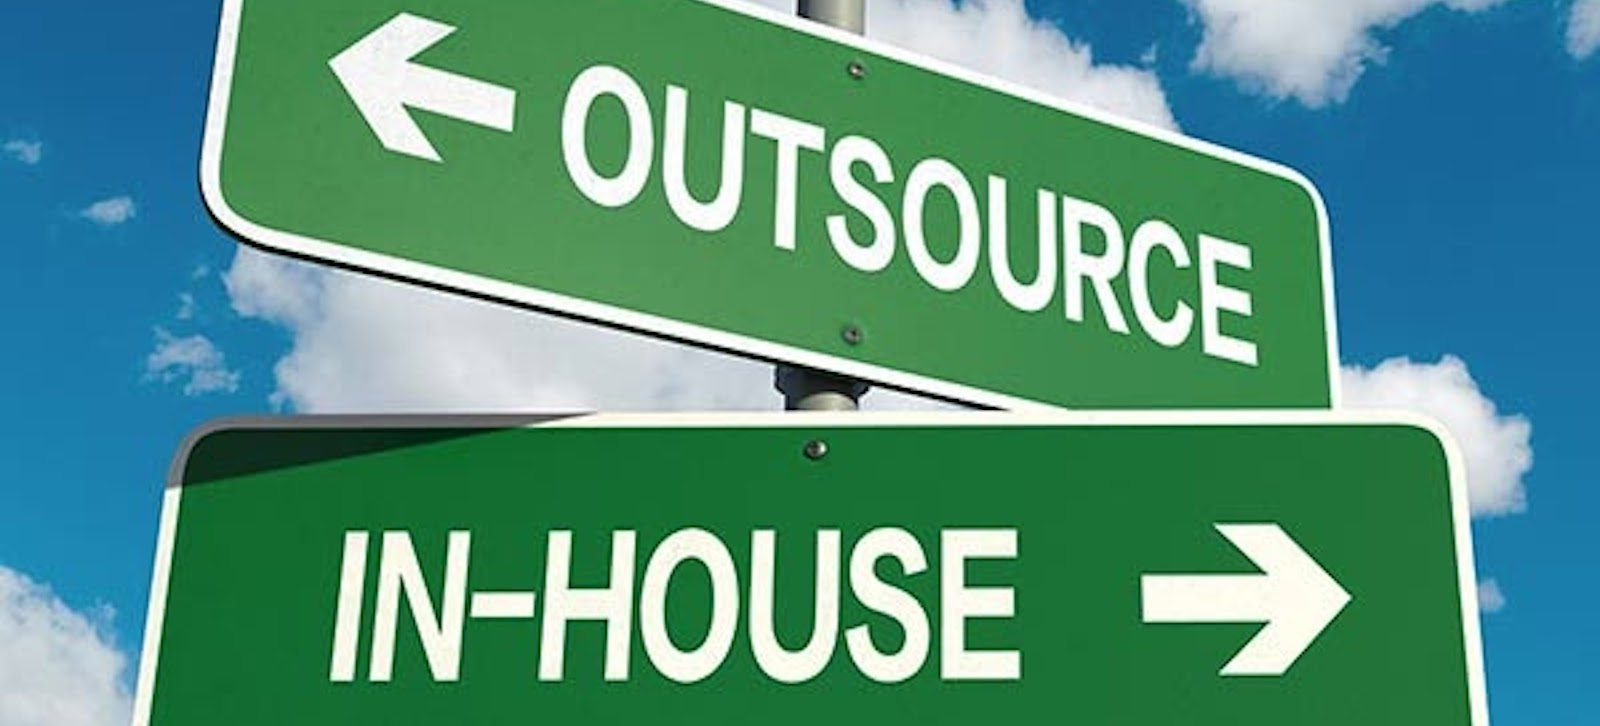 Why It's Cheaper To Outsource to a Marketing Agency Than Hire In-House